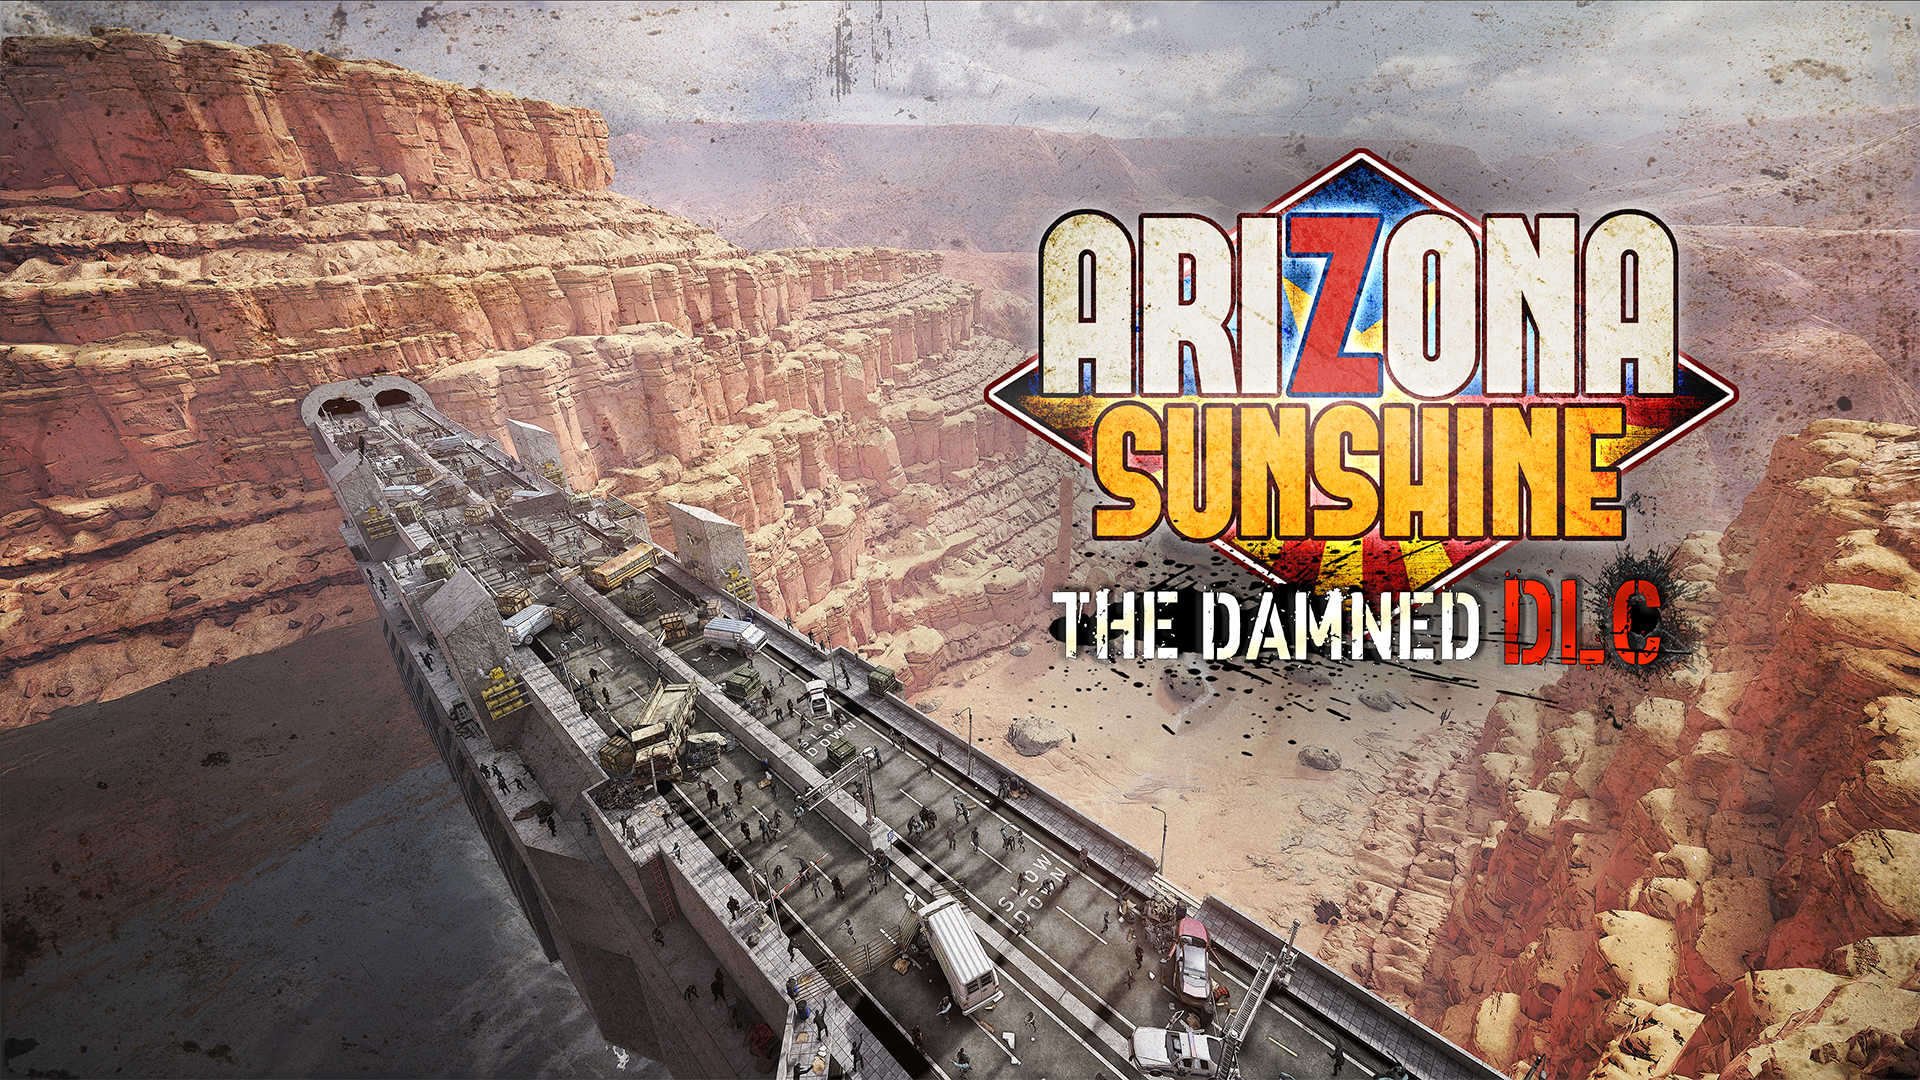 Arizona Sunshine The Damned DLC Key Art